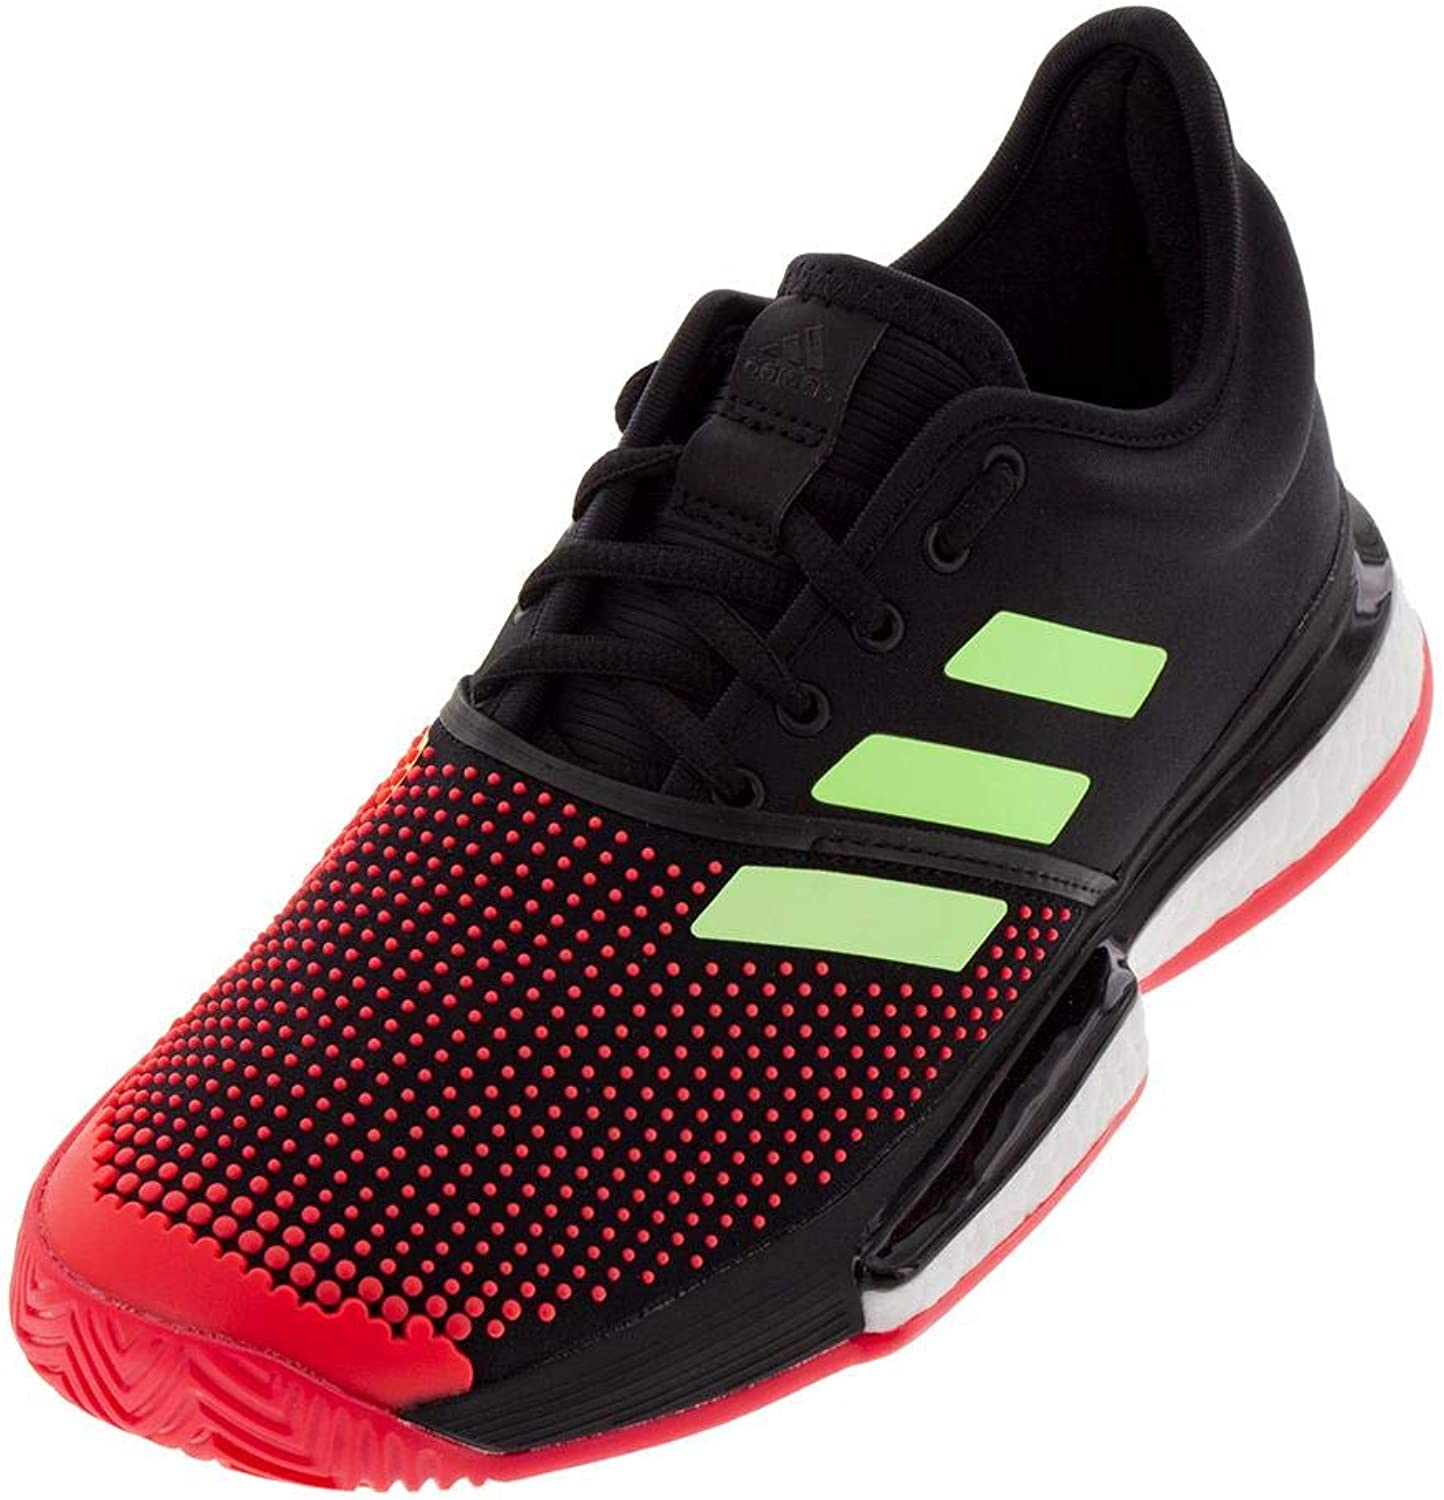 Adidas Sole Court Boost Womens Tennis shoes